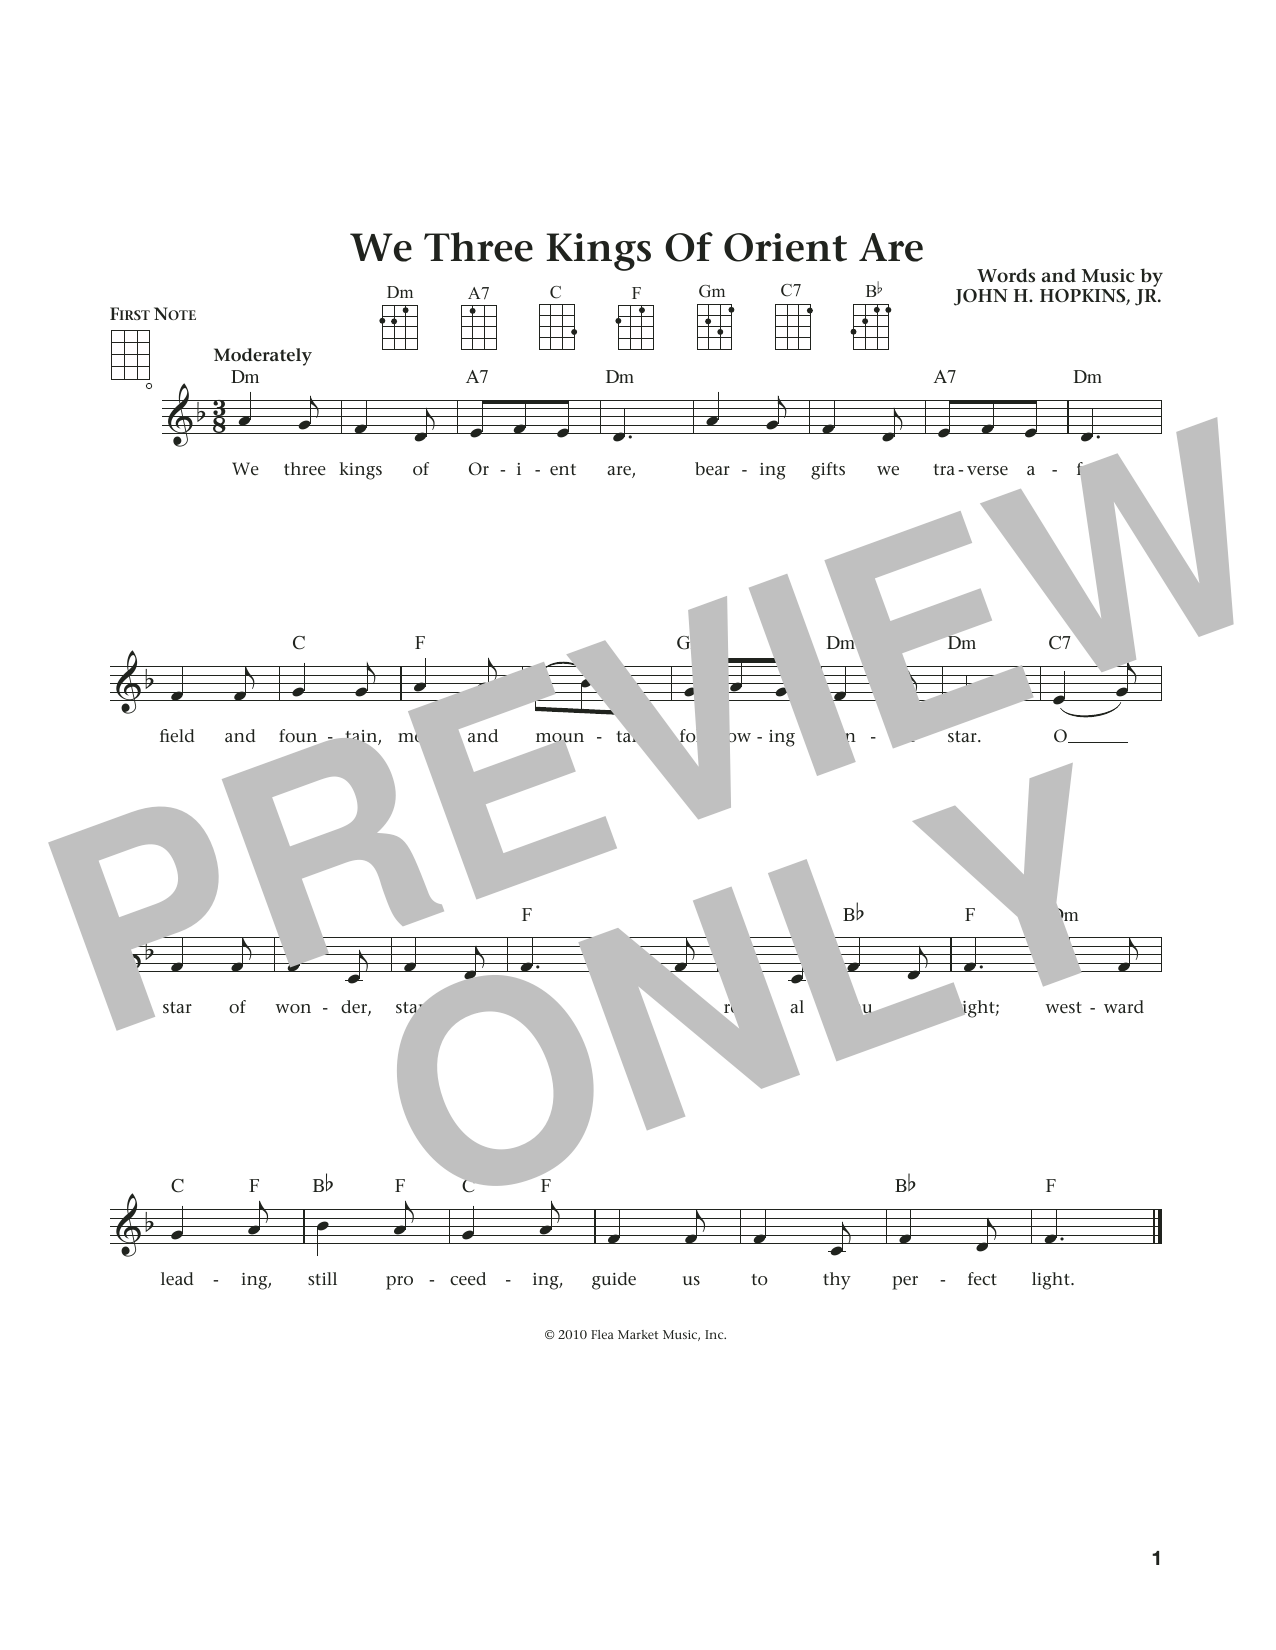 We Three Kings Of Orient Are (from The Daily Ukulele) (arr. Liz and Jim Beloff) (Ukulele)